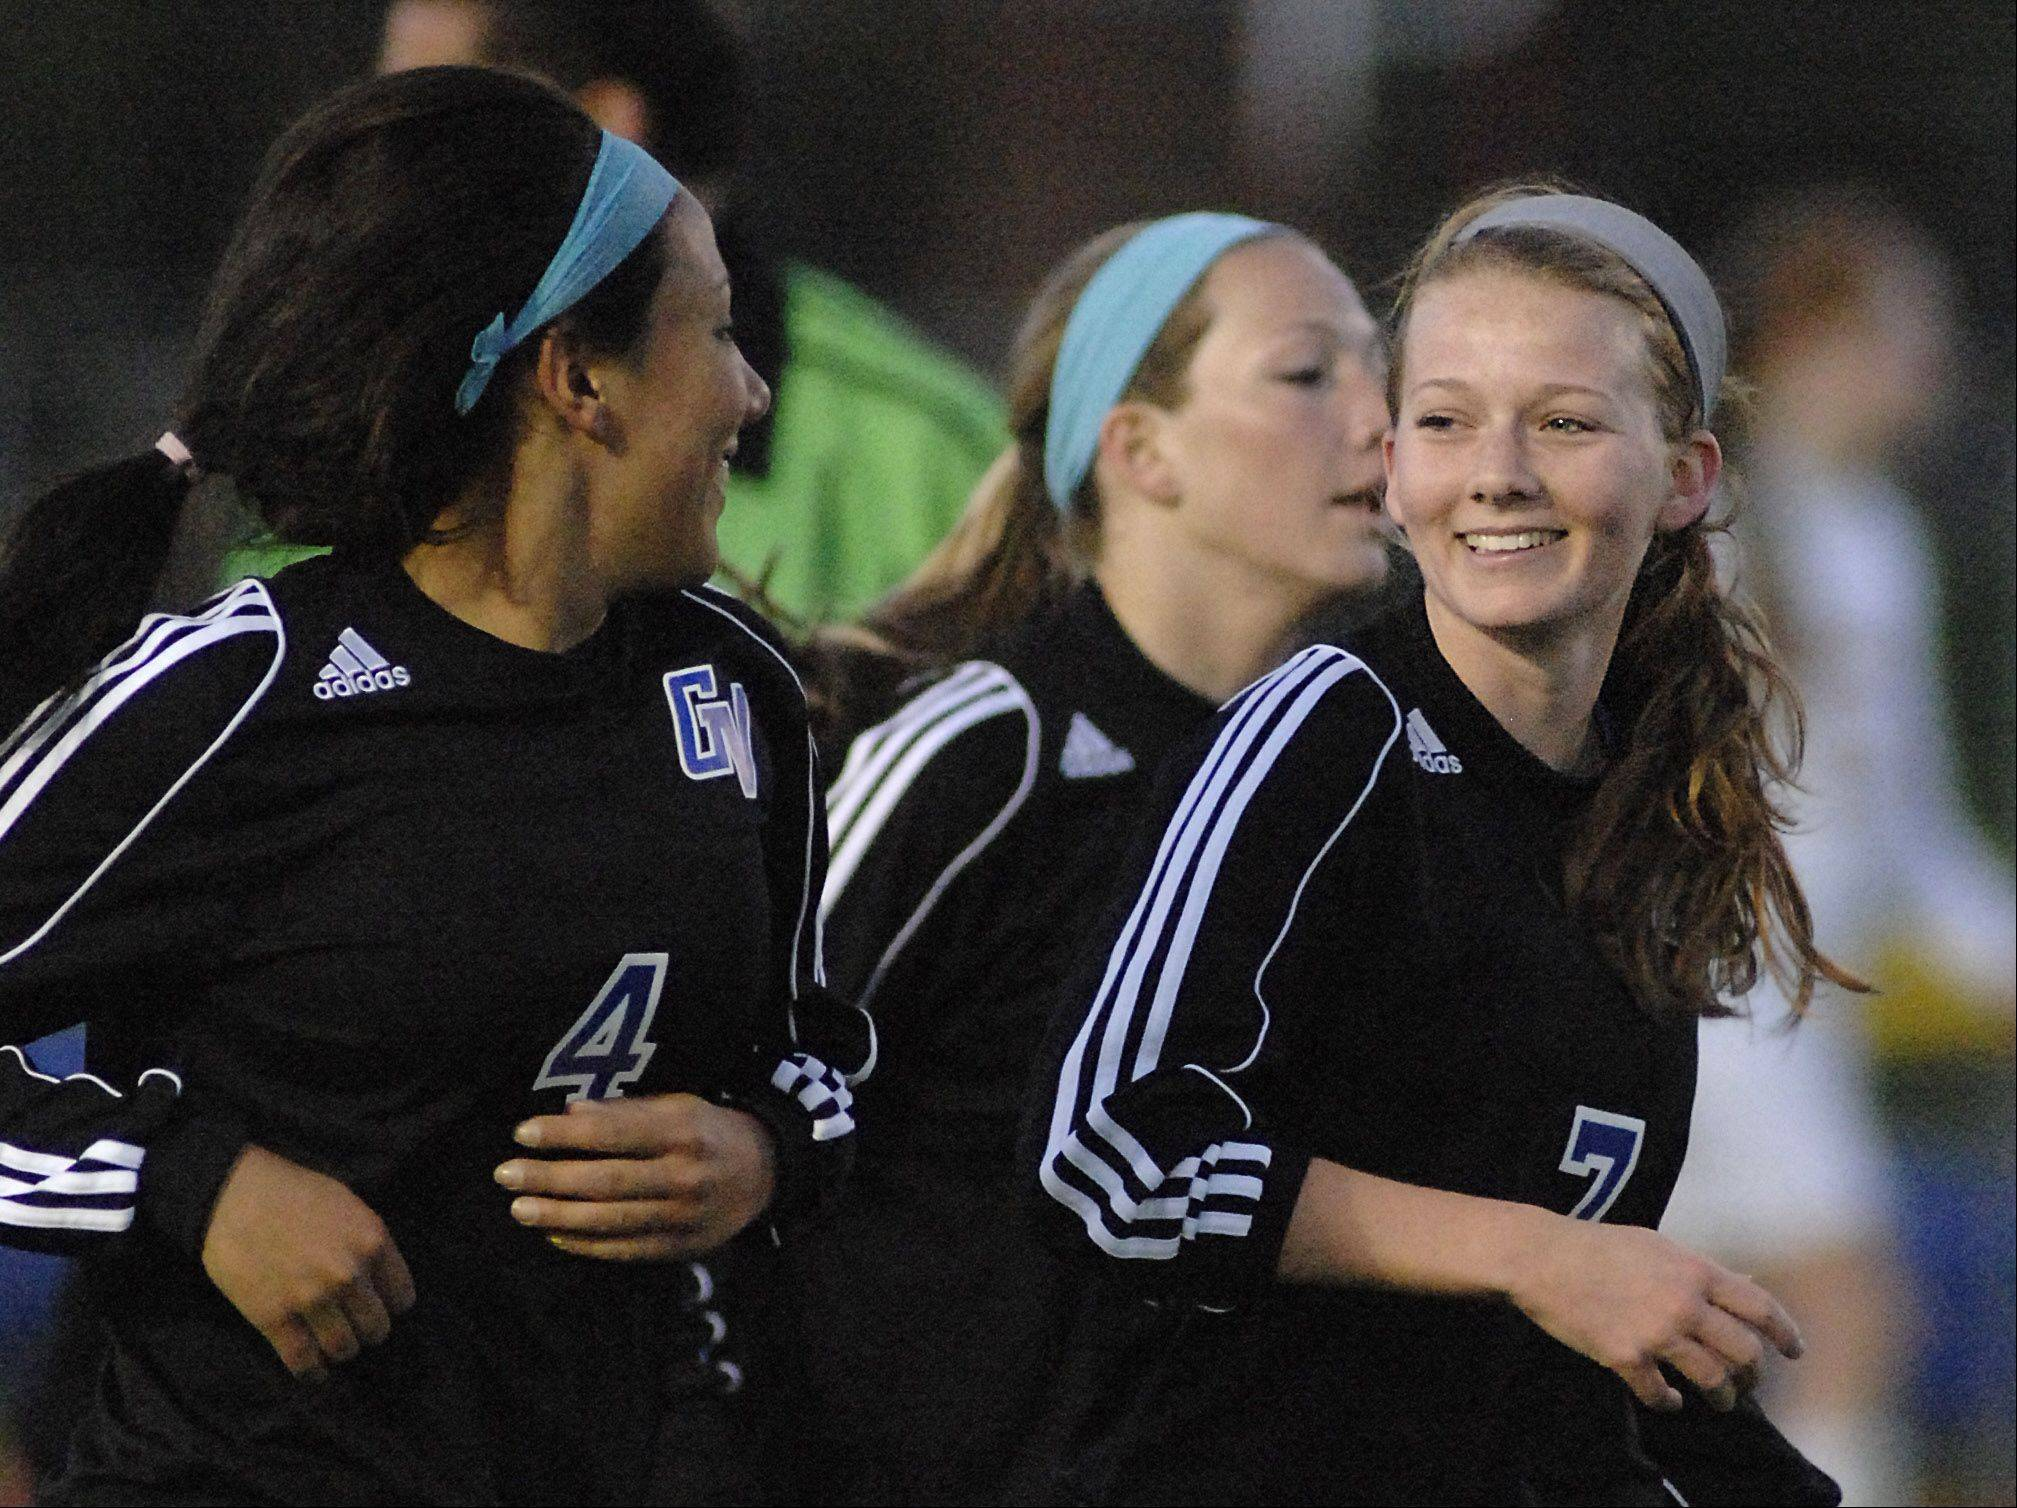 Laura Stoecker/lstoecker@dailyherald.comGeneva's Hope Goodman, right, celebrates her goal in the first half with teammate Kristin Rodriguez on Wednesday, April 4.